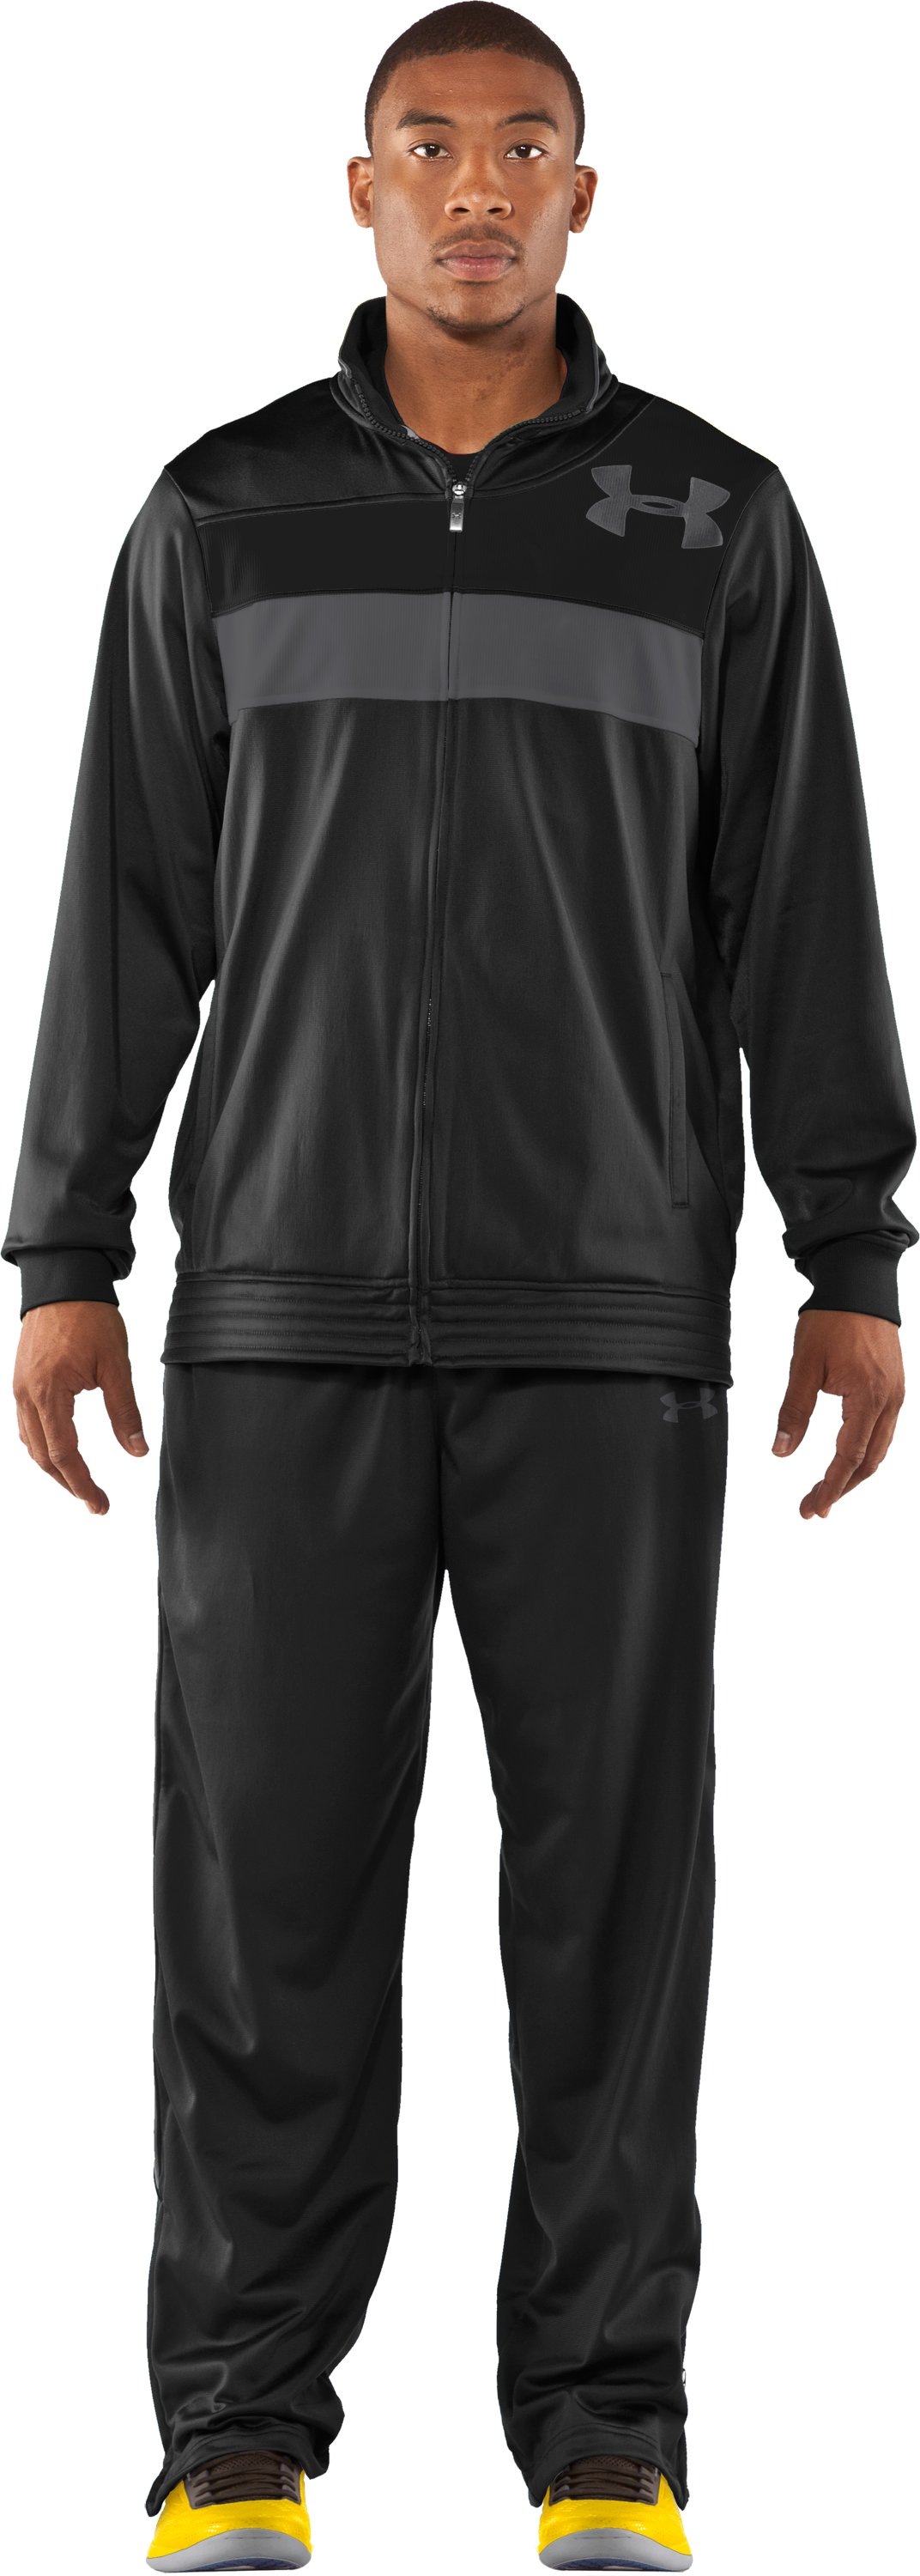 Men's UA Bedstock Warm-Up Jacket, Black